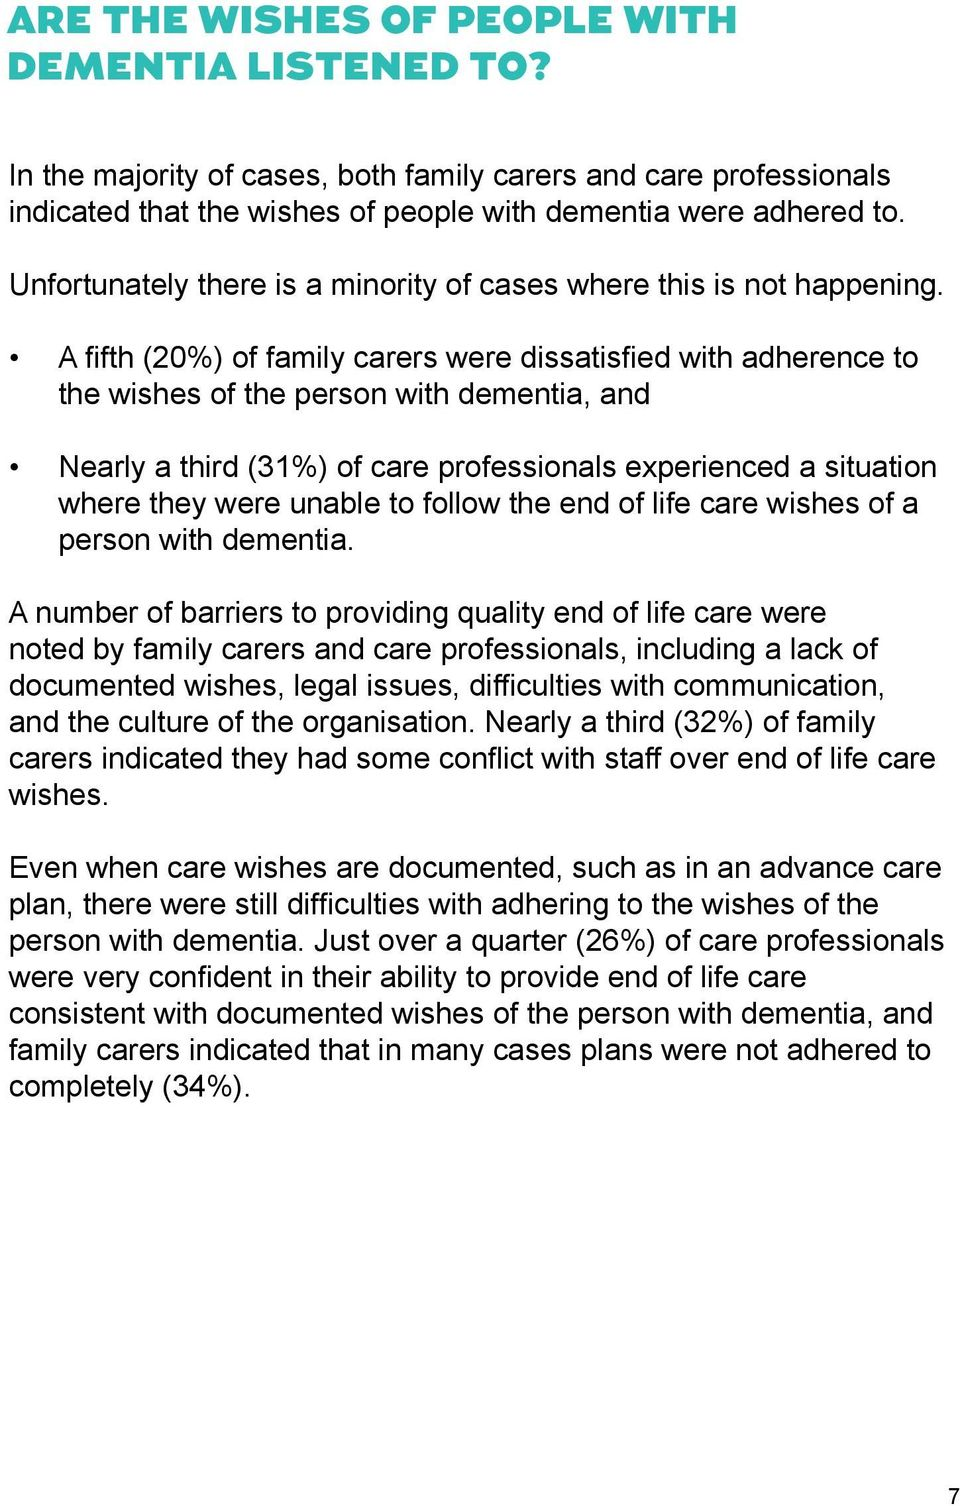 A fifth (20%) of family carers were dissatisfied with adherence to the wishes of the person with dementia, and Nearly a third (31%) of care professionals experienced a situation where they were